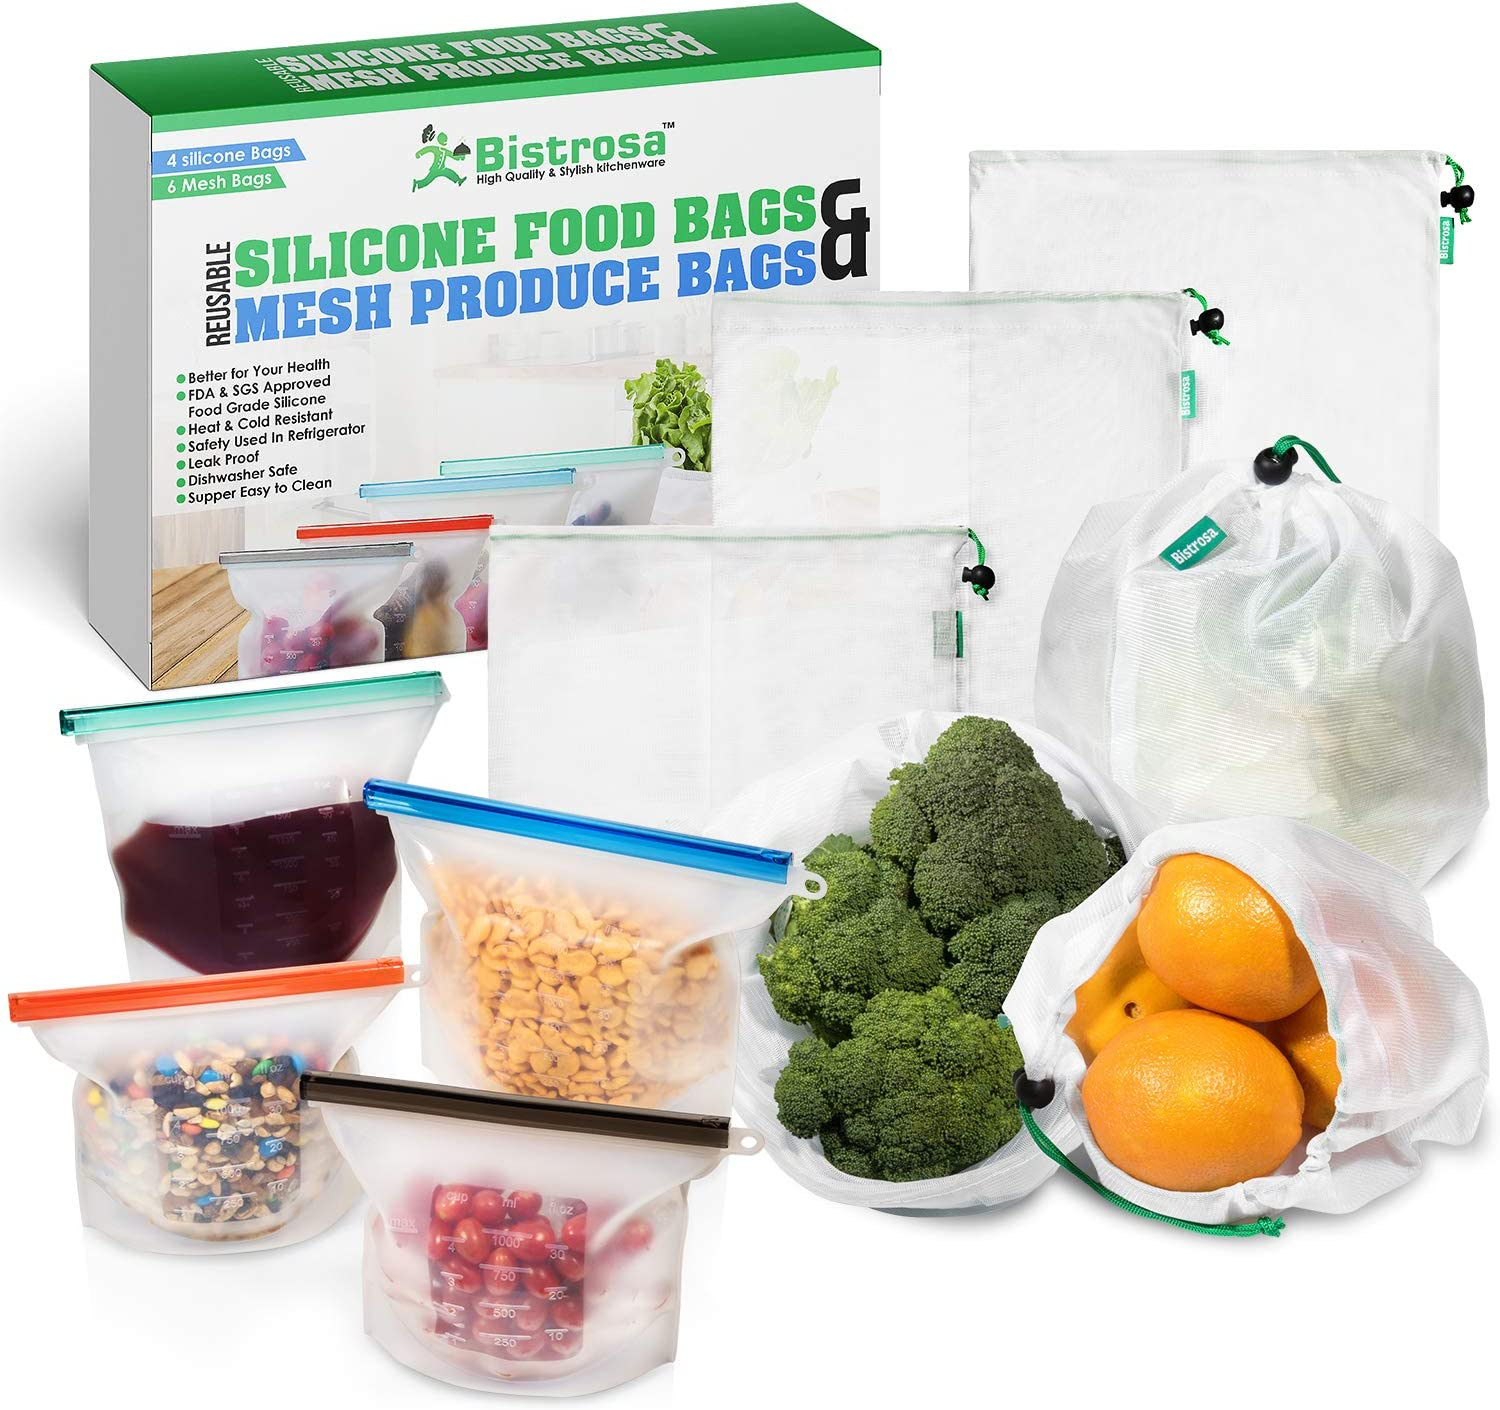 Reusable Silicone Bags (4) - With Mesh Produce Bags (6) | Eco Friendly Food Storage | Refrigerator, Freezer & Dishwasher Safe | | Airtight, Washable | Snack, Sandwich, Lunch, Leftovers, Vegetables